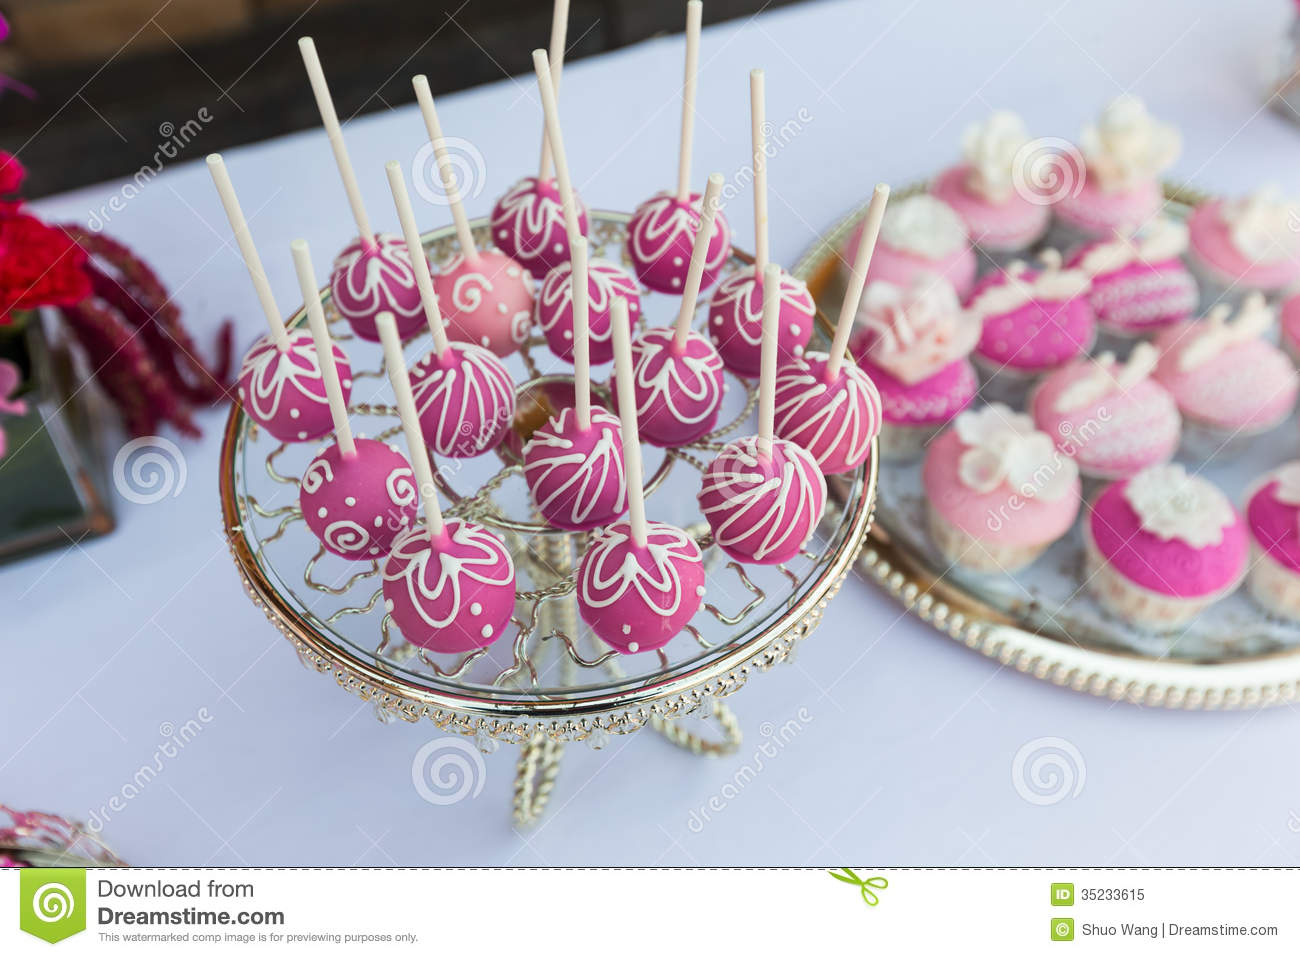 Cake Pops And Cupcakes Royalty Free Stock Image